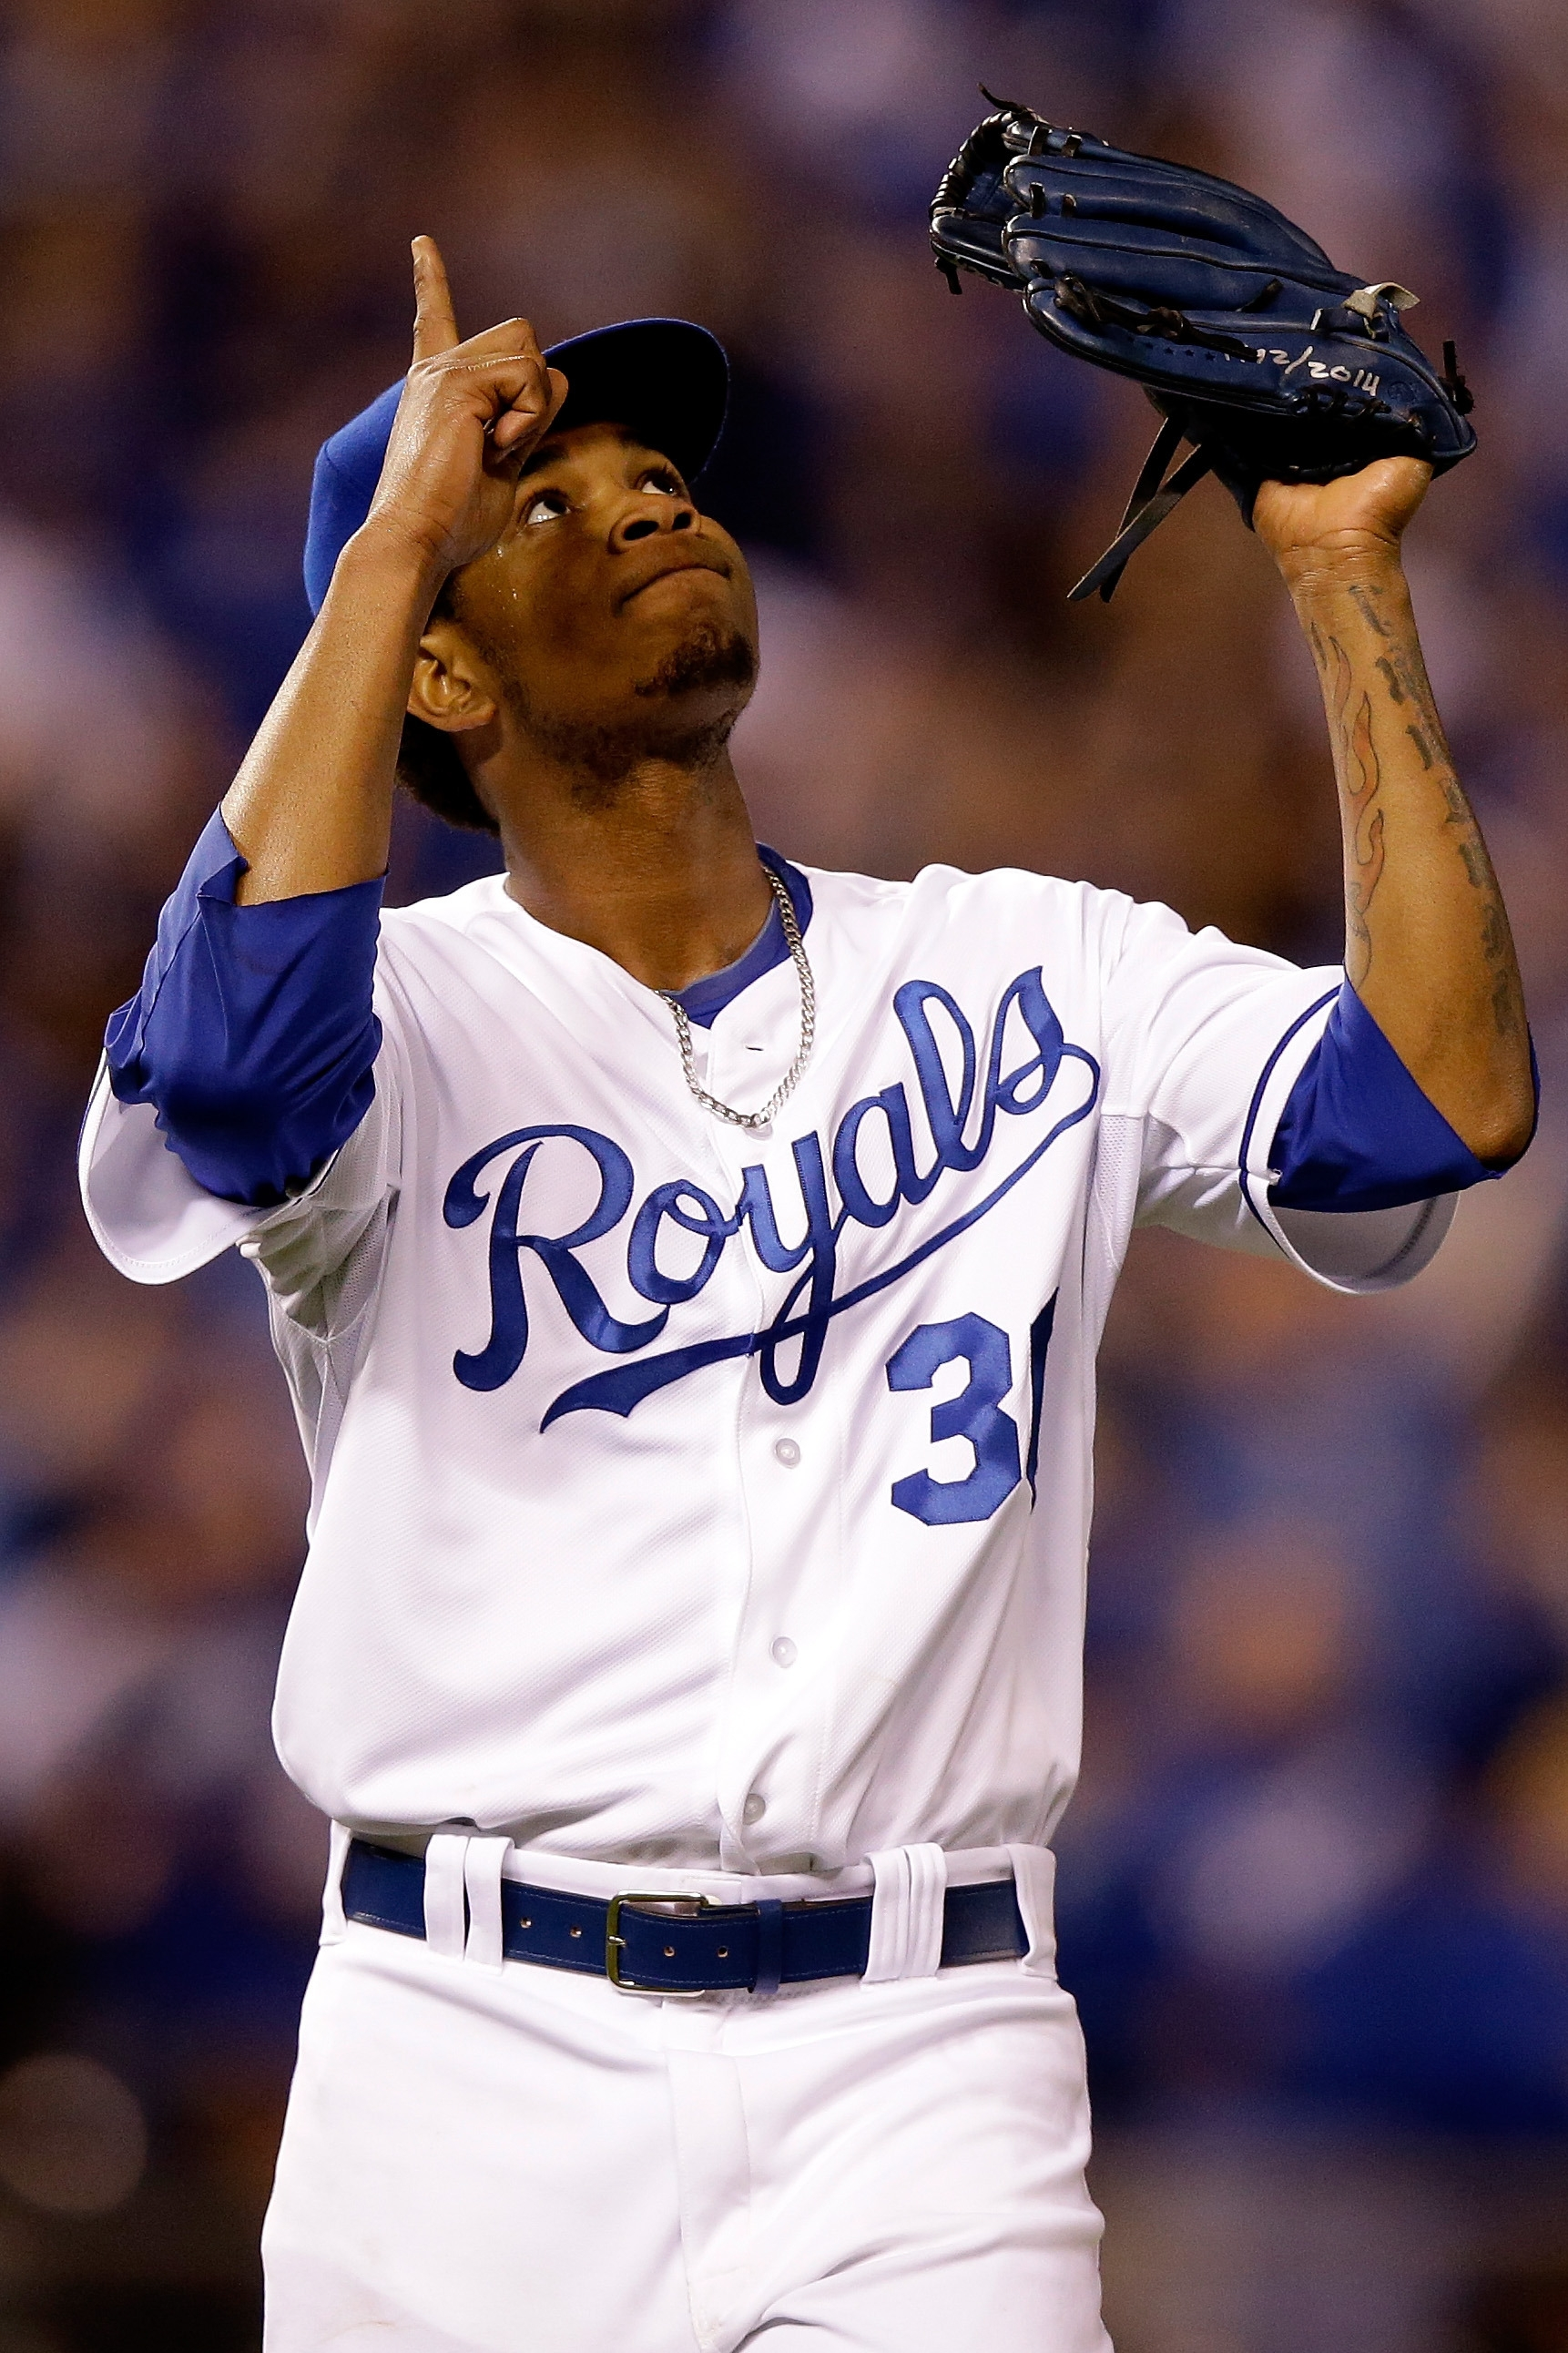 Pitcher Yordano Ventura of the Royals is happy he got out of a bases-loaded jam in the third inning.